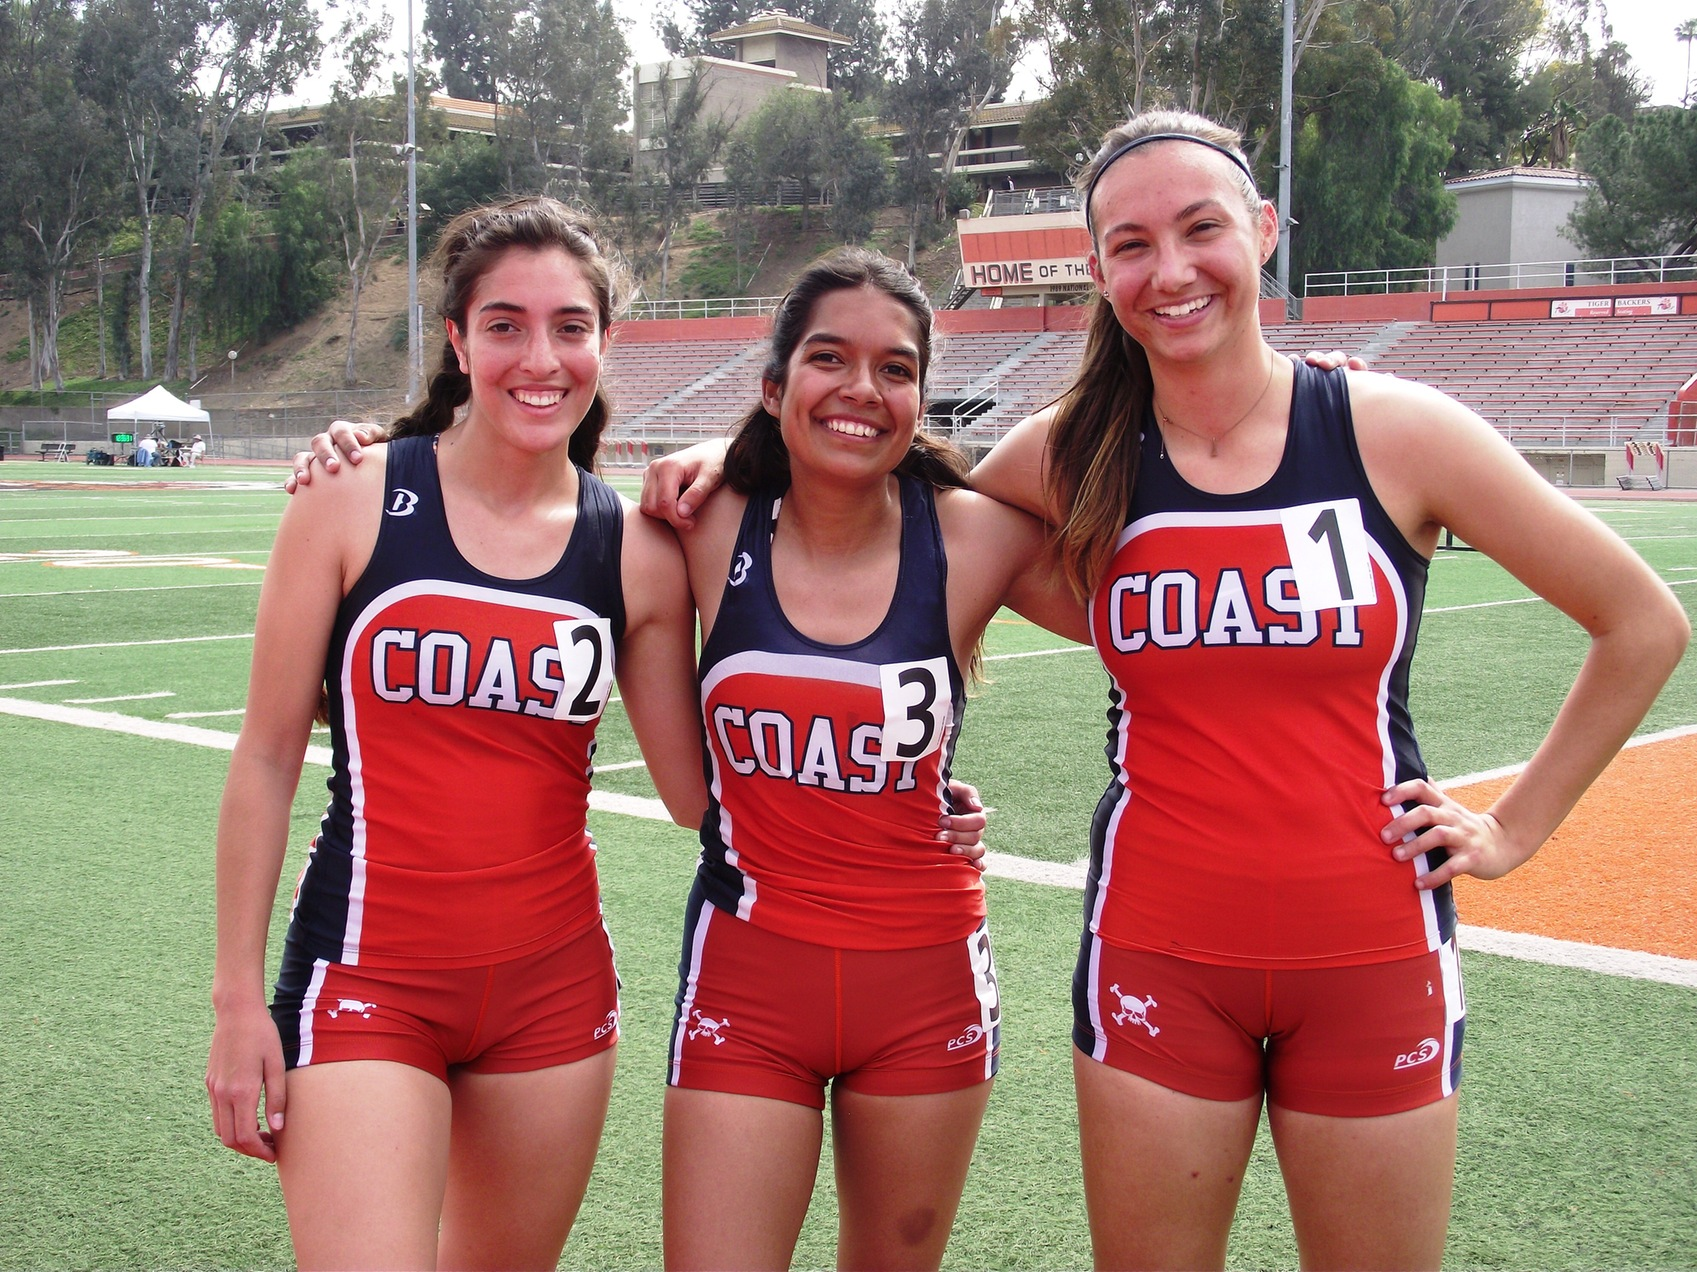 Pirate women go 1-2-3 at OEC Multi-Event Championships